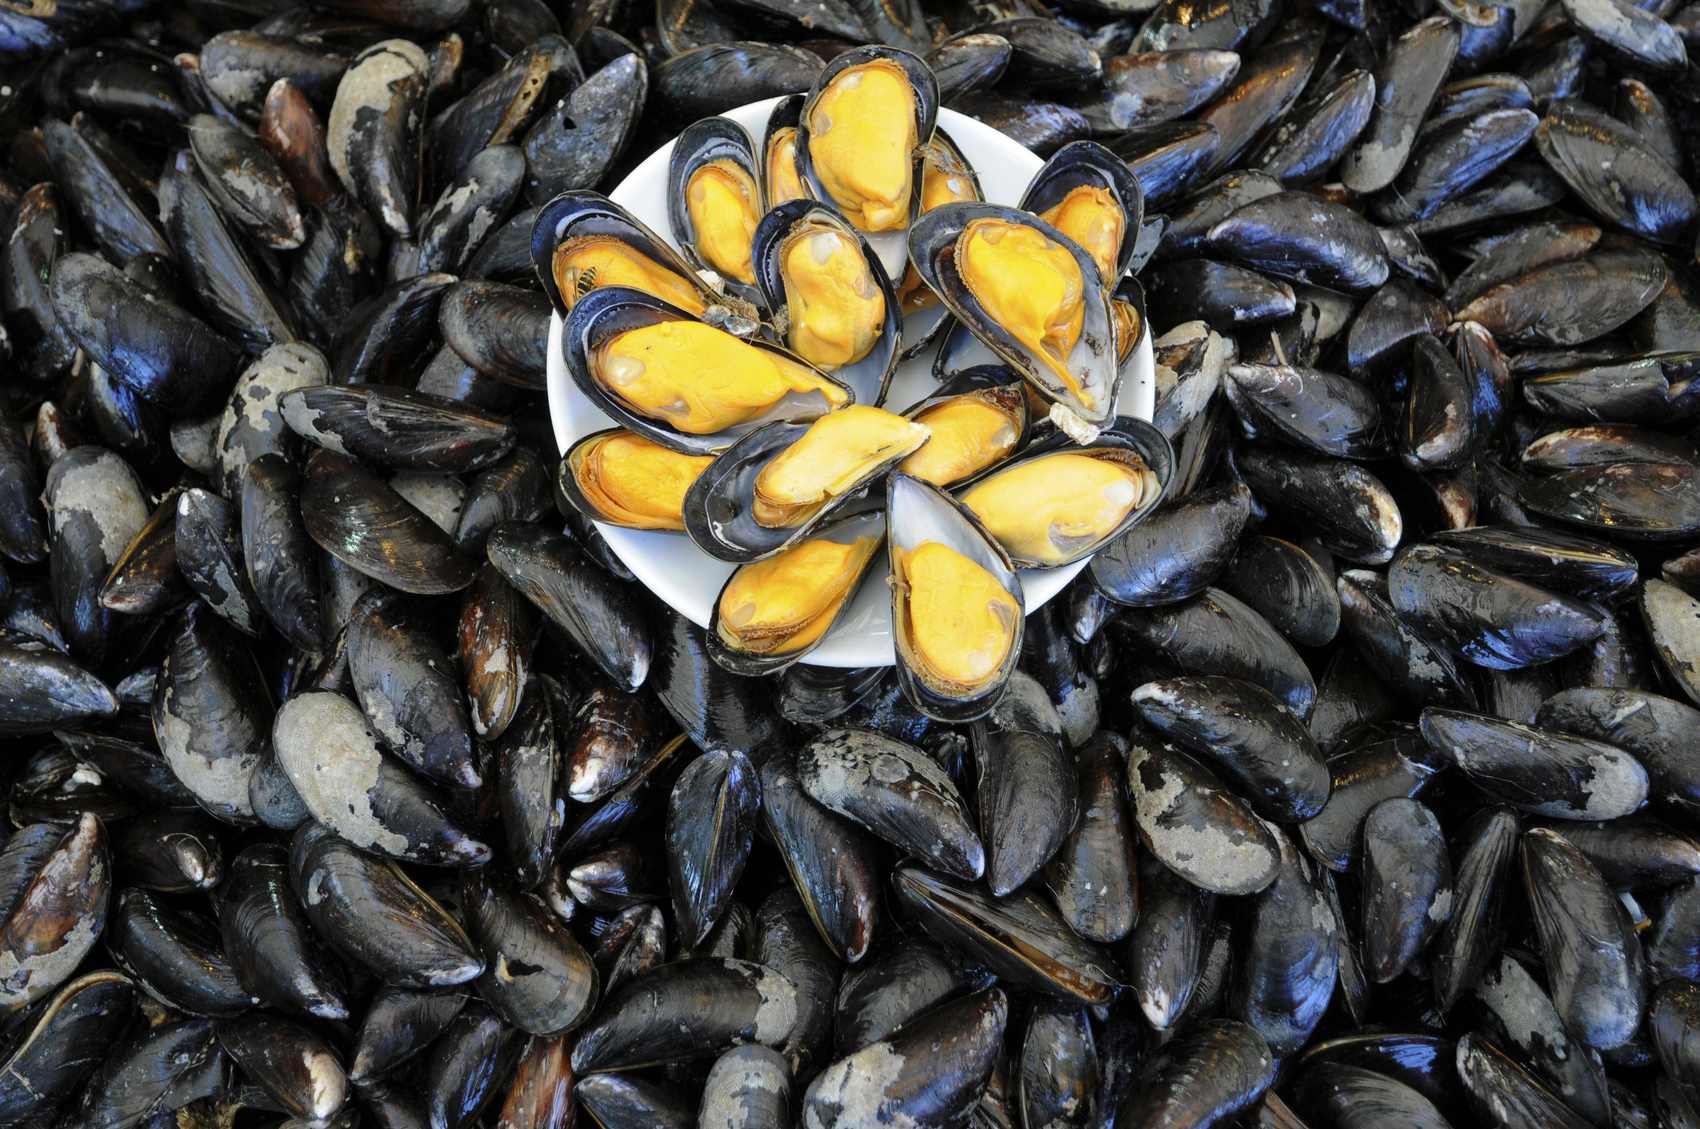 Useful properties of mussels for our body